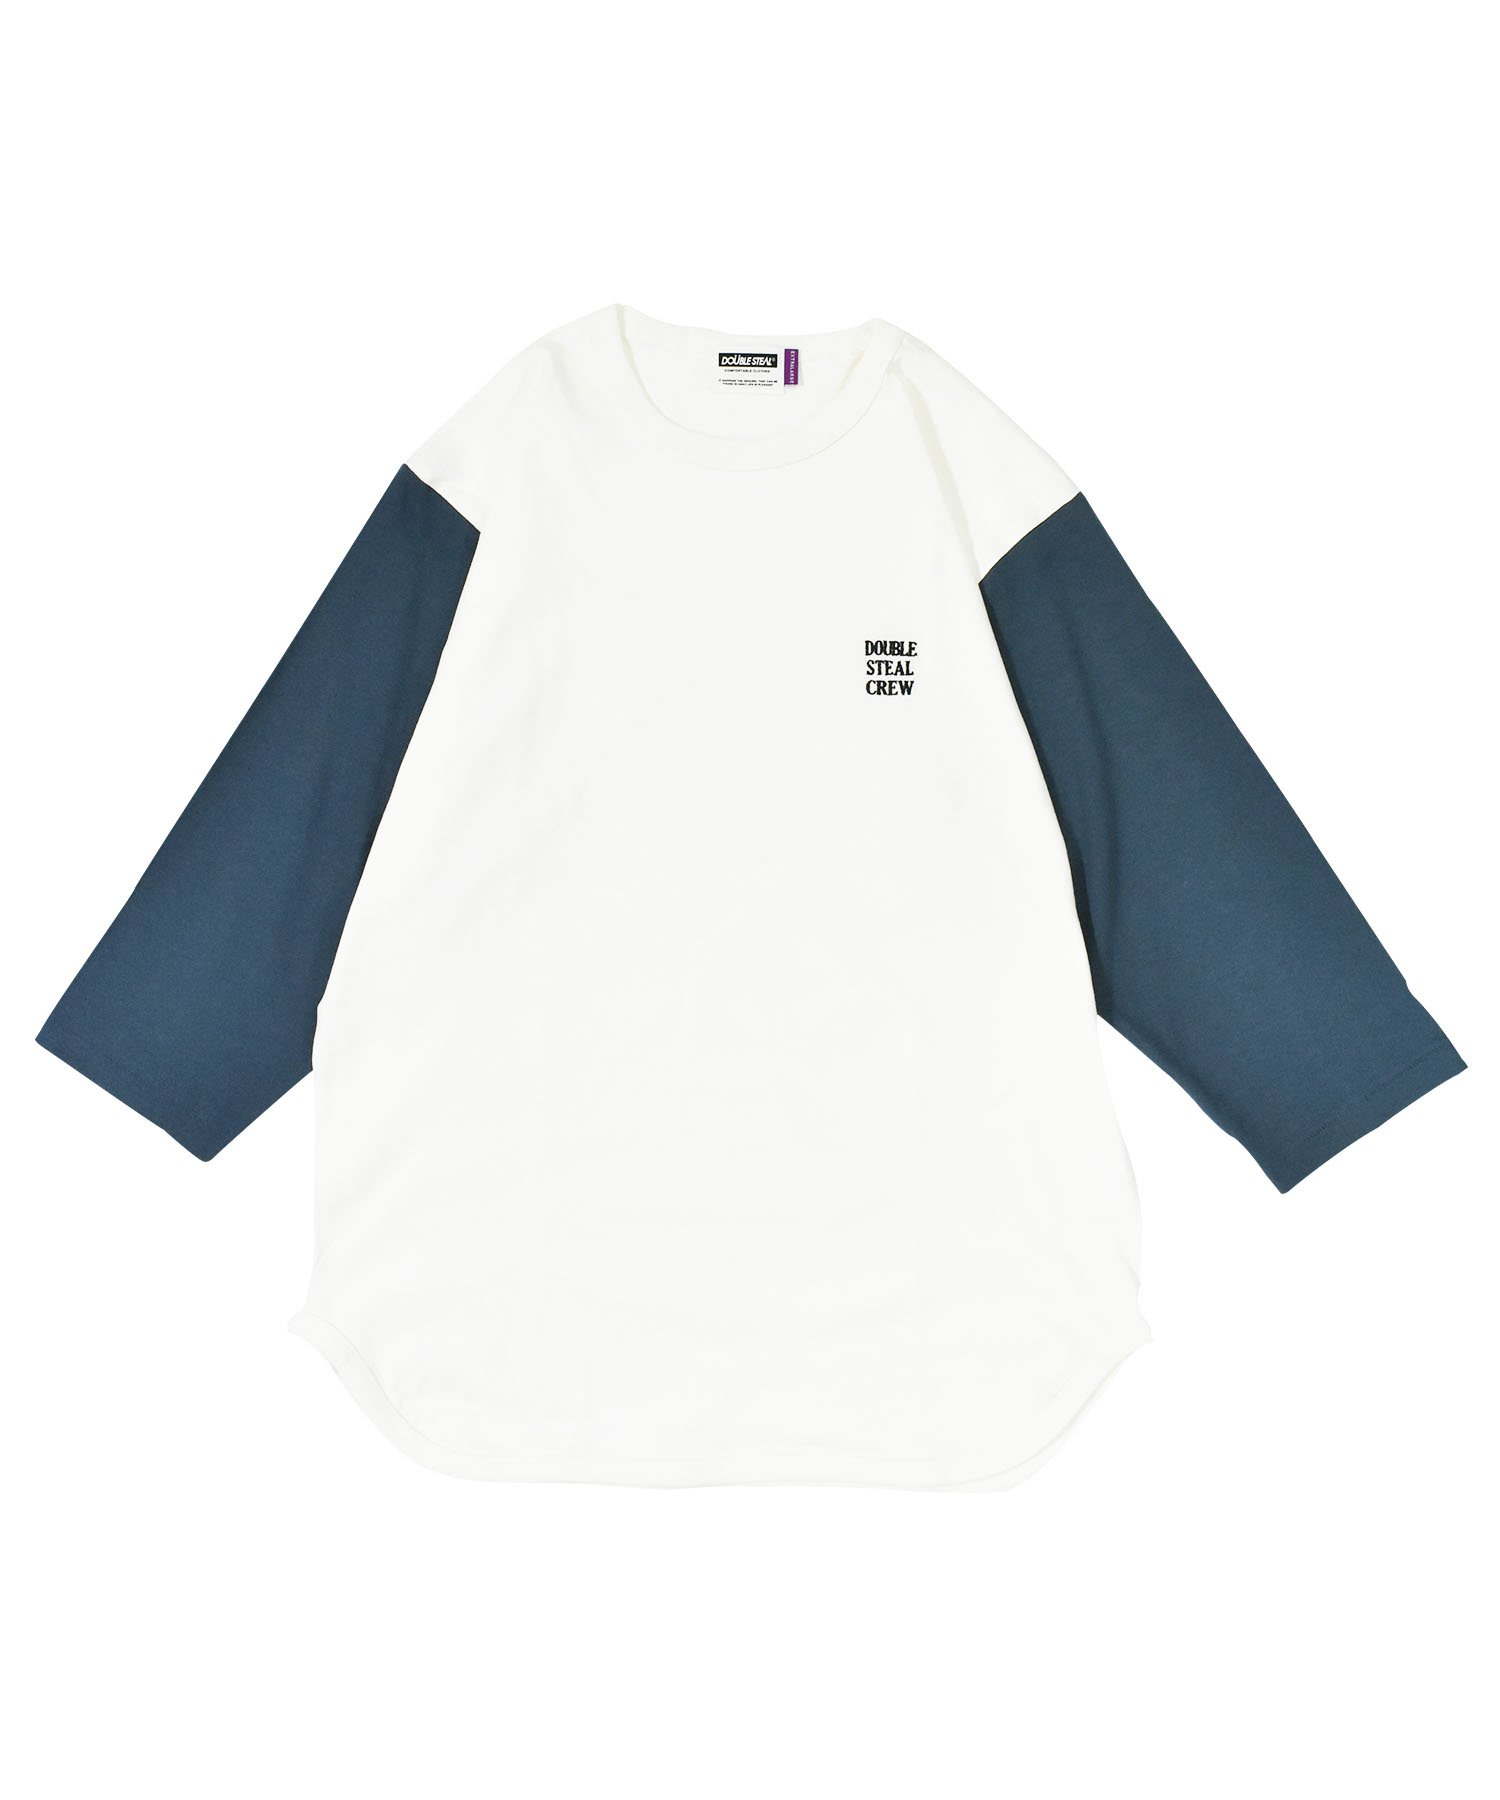 Mini Crew Logo Sleeves 長袖 Tシャツ